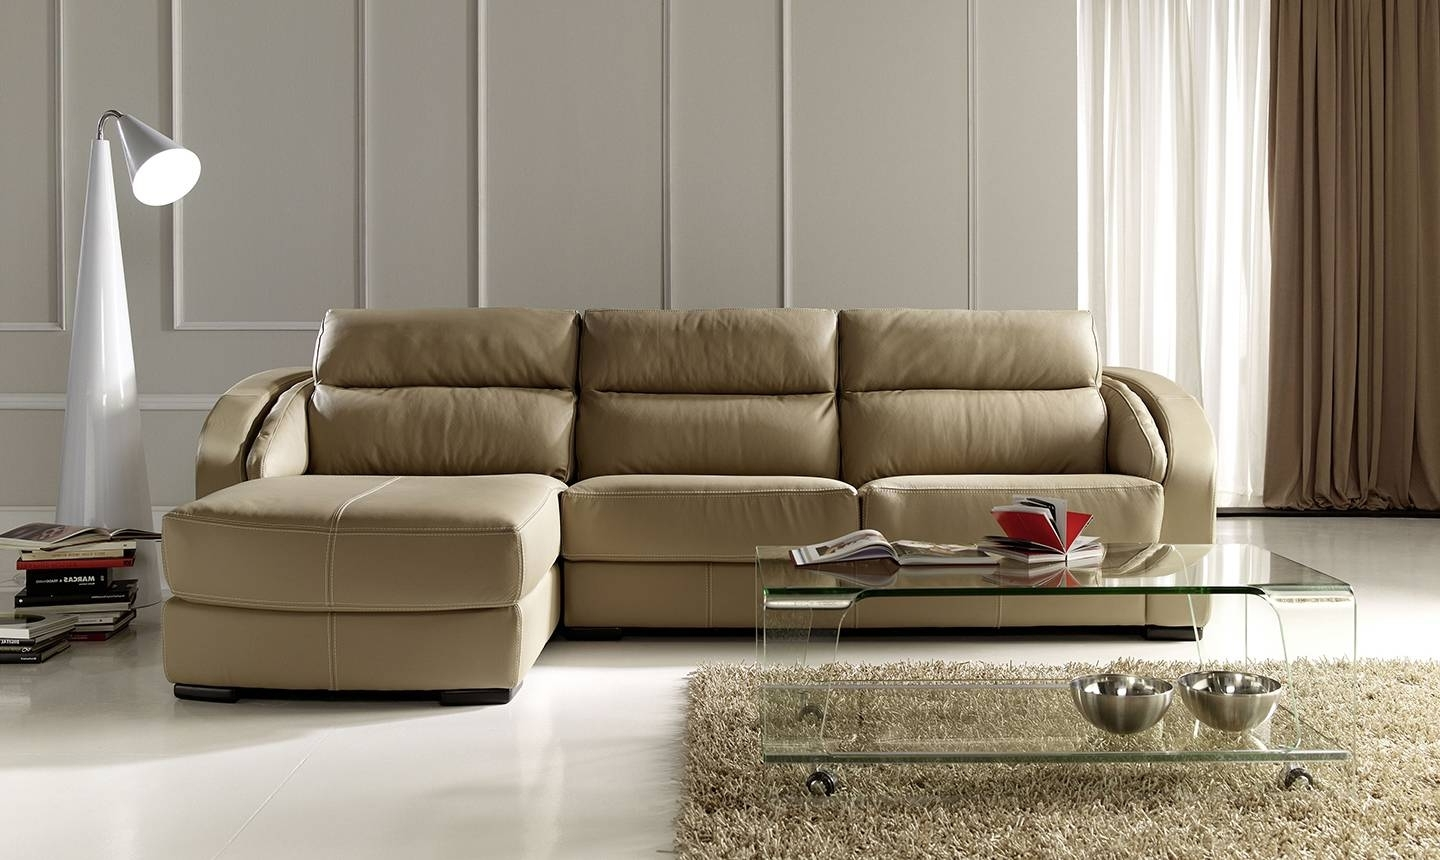 Well Known Modern Style Apartment Size Leather Sectional Sofa And Exquisite With Regard To Virginia Beach Sectional Sofas (View 14 of 15)